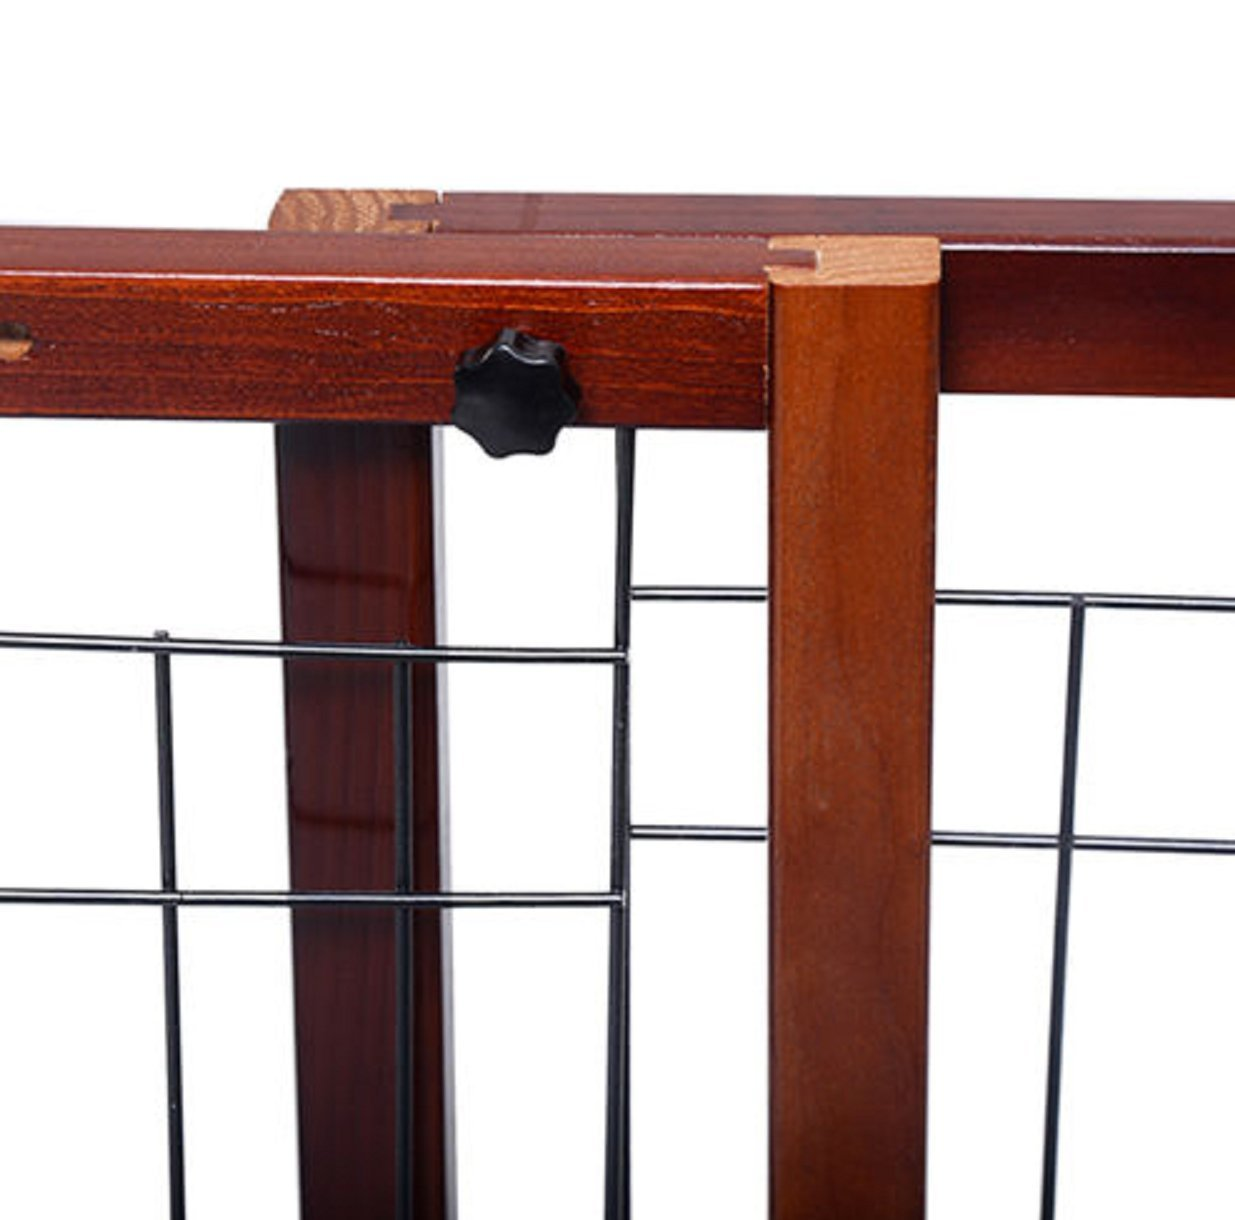 Gate Dog Wood Door Paw Wide Tall Adjustable Indoor Solid Construction Pet by SisterYou (Image #5)